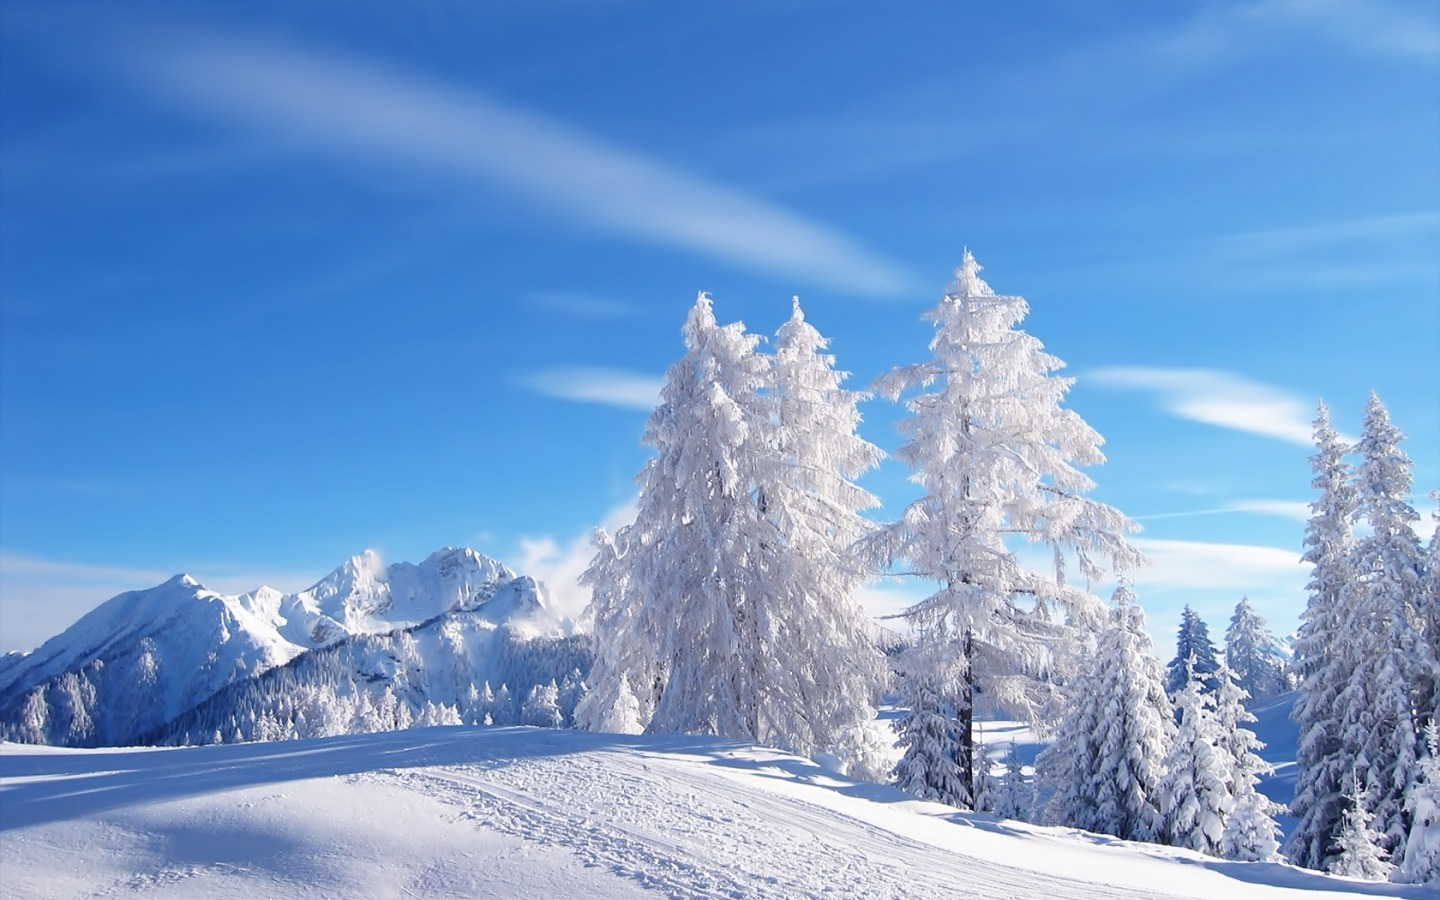 """ทุ่งหิมะล่ะ"" Snow-wallpaper-winter-nature-wallpaper-widescreen"